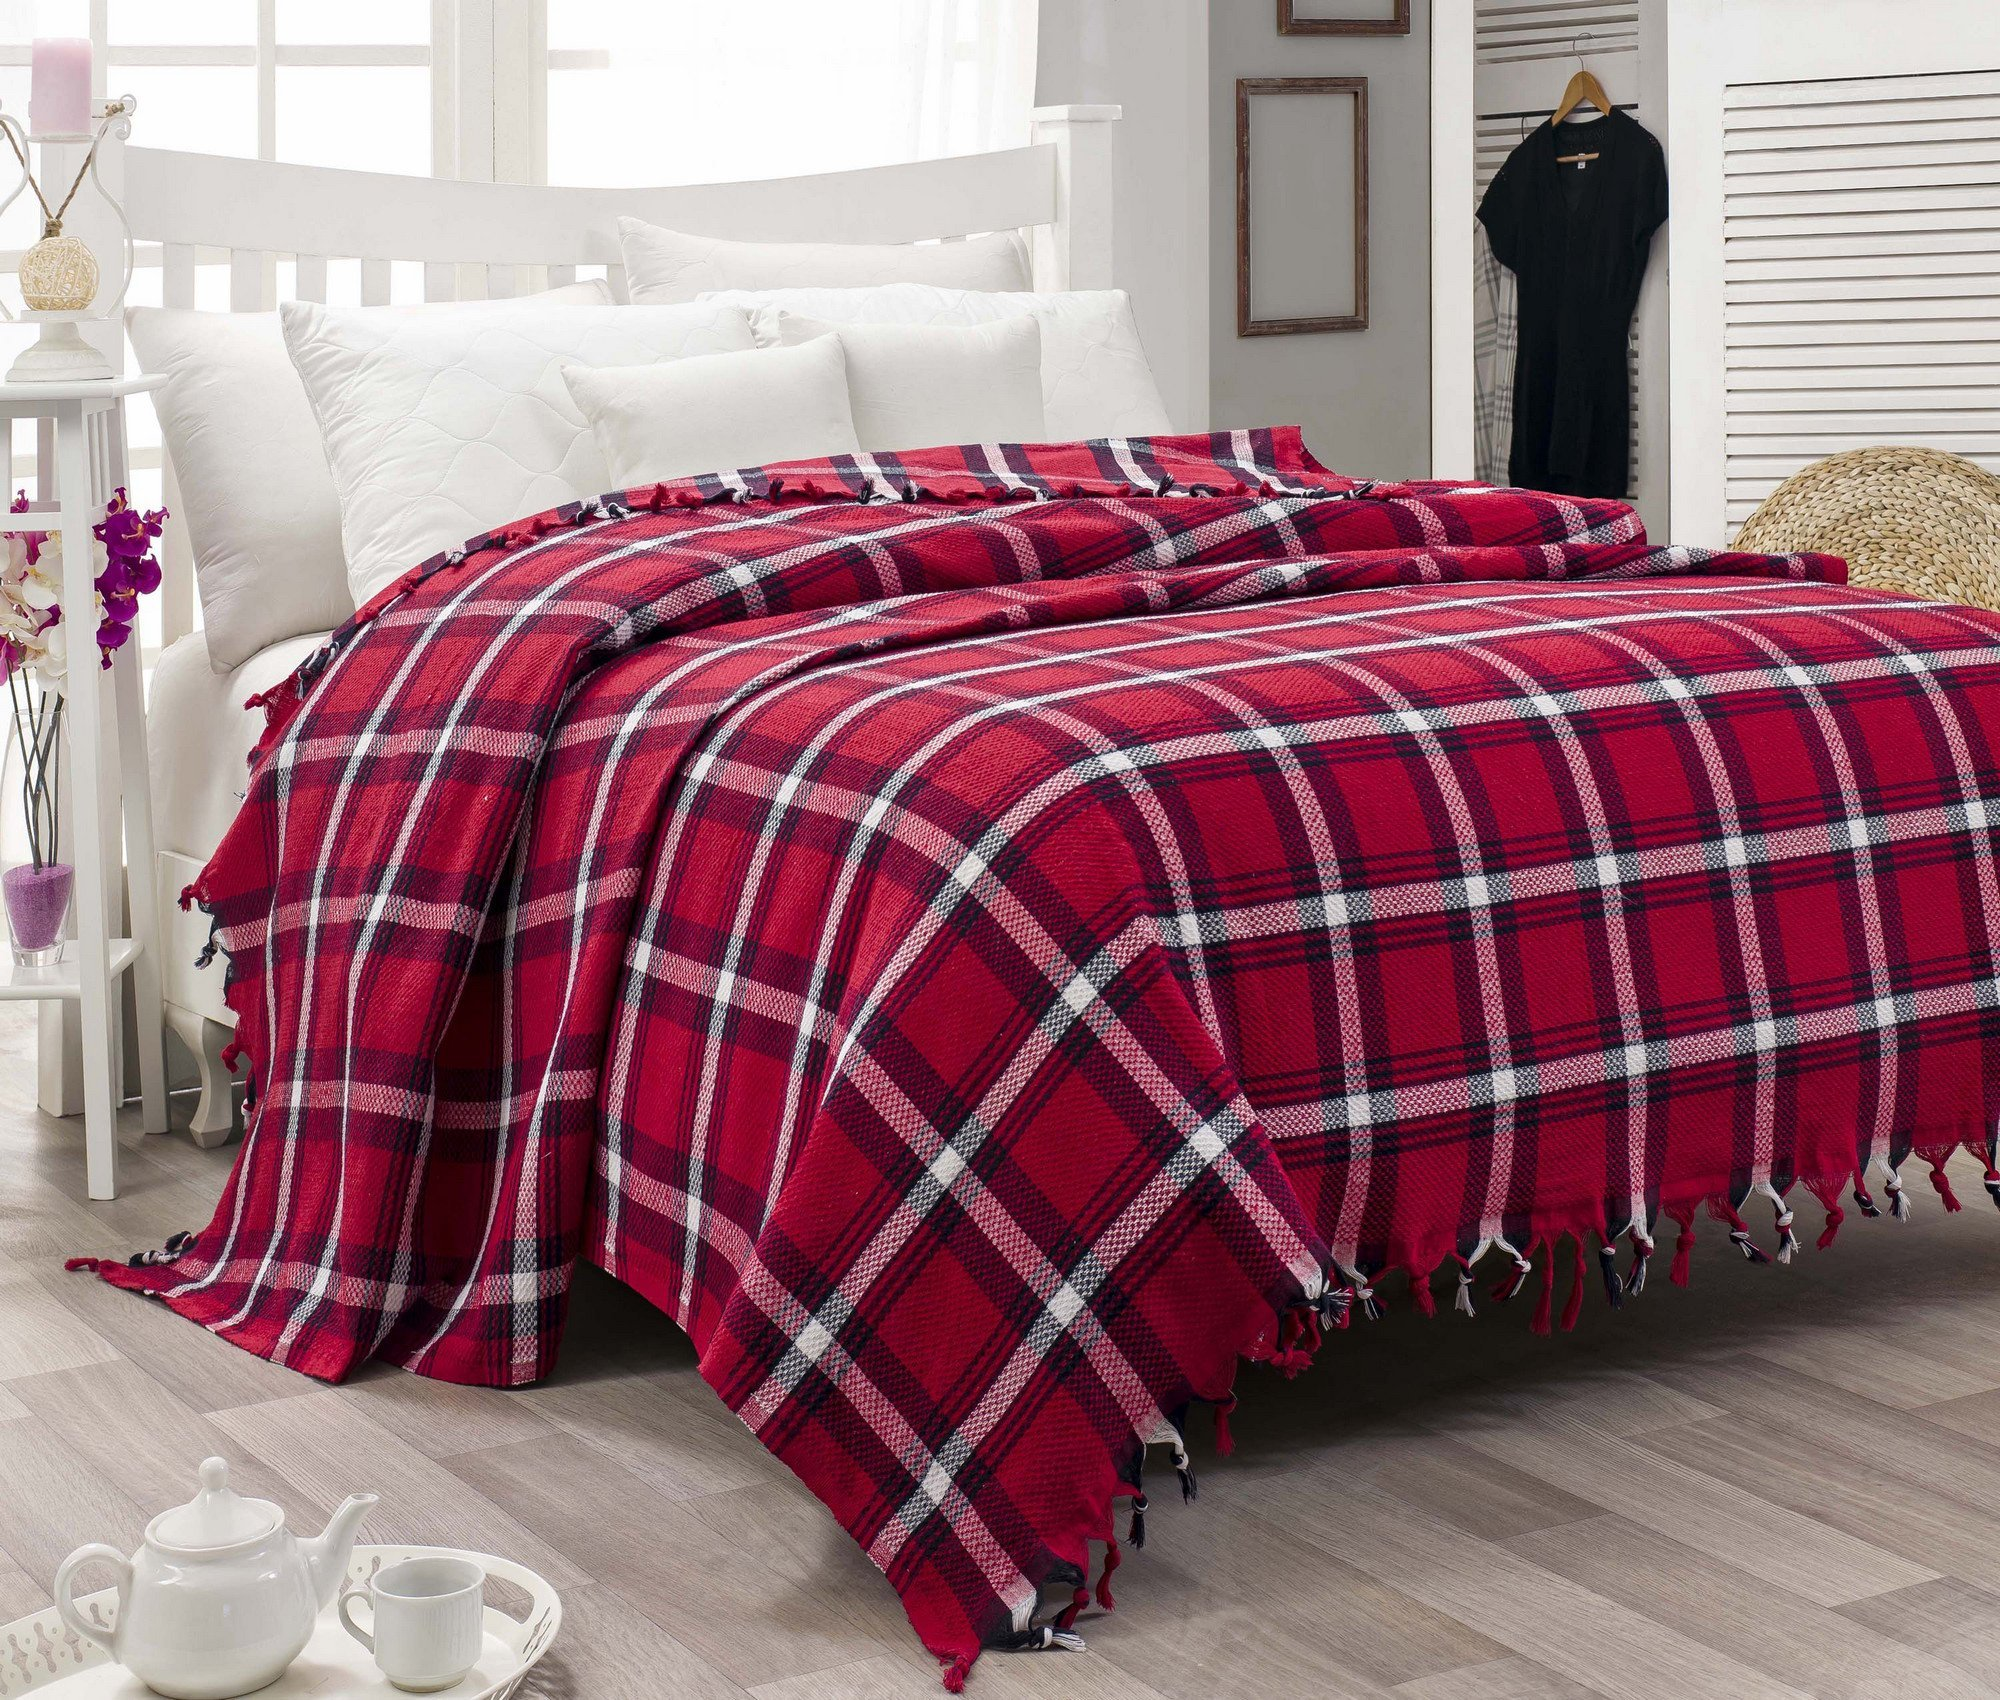 LaModaHome Shapes Coverlet, 100% Cotton - Geometrical Striped, Tasseled, Red and White - Size (78.7'' x 94.5'') for Double Bed